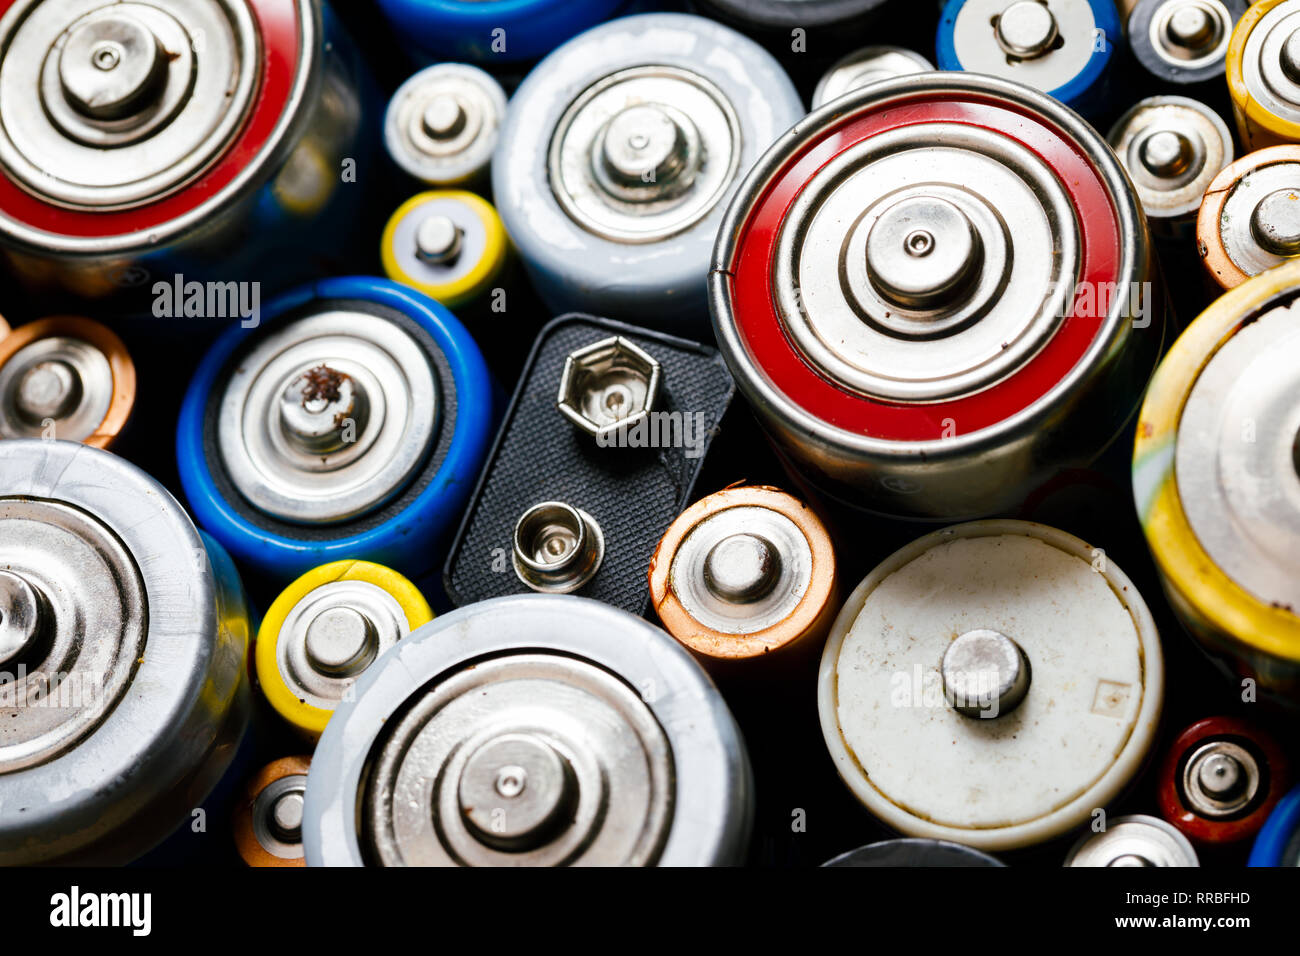 Dumped used Alkaline batteries of various types (C AA AAA D 9V) ready for recycling - toxic waste and environmental issues concept - Stock Image